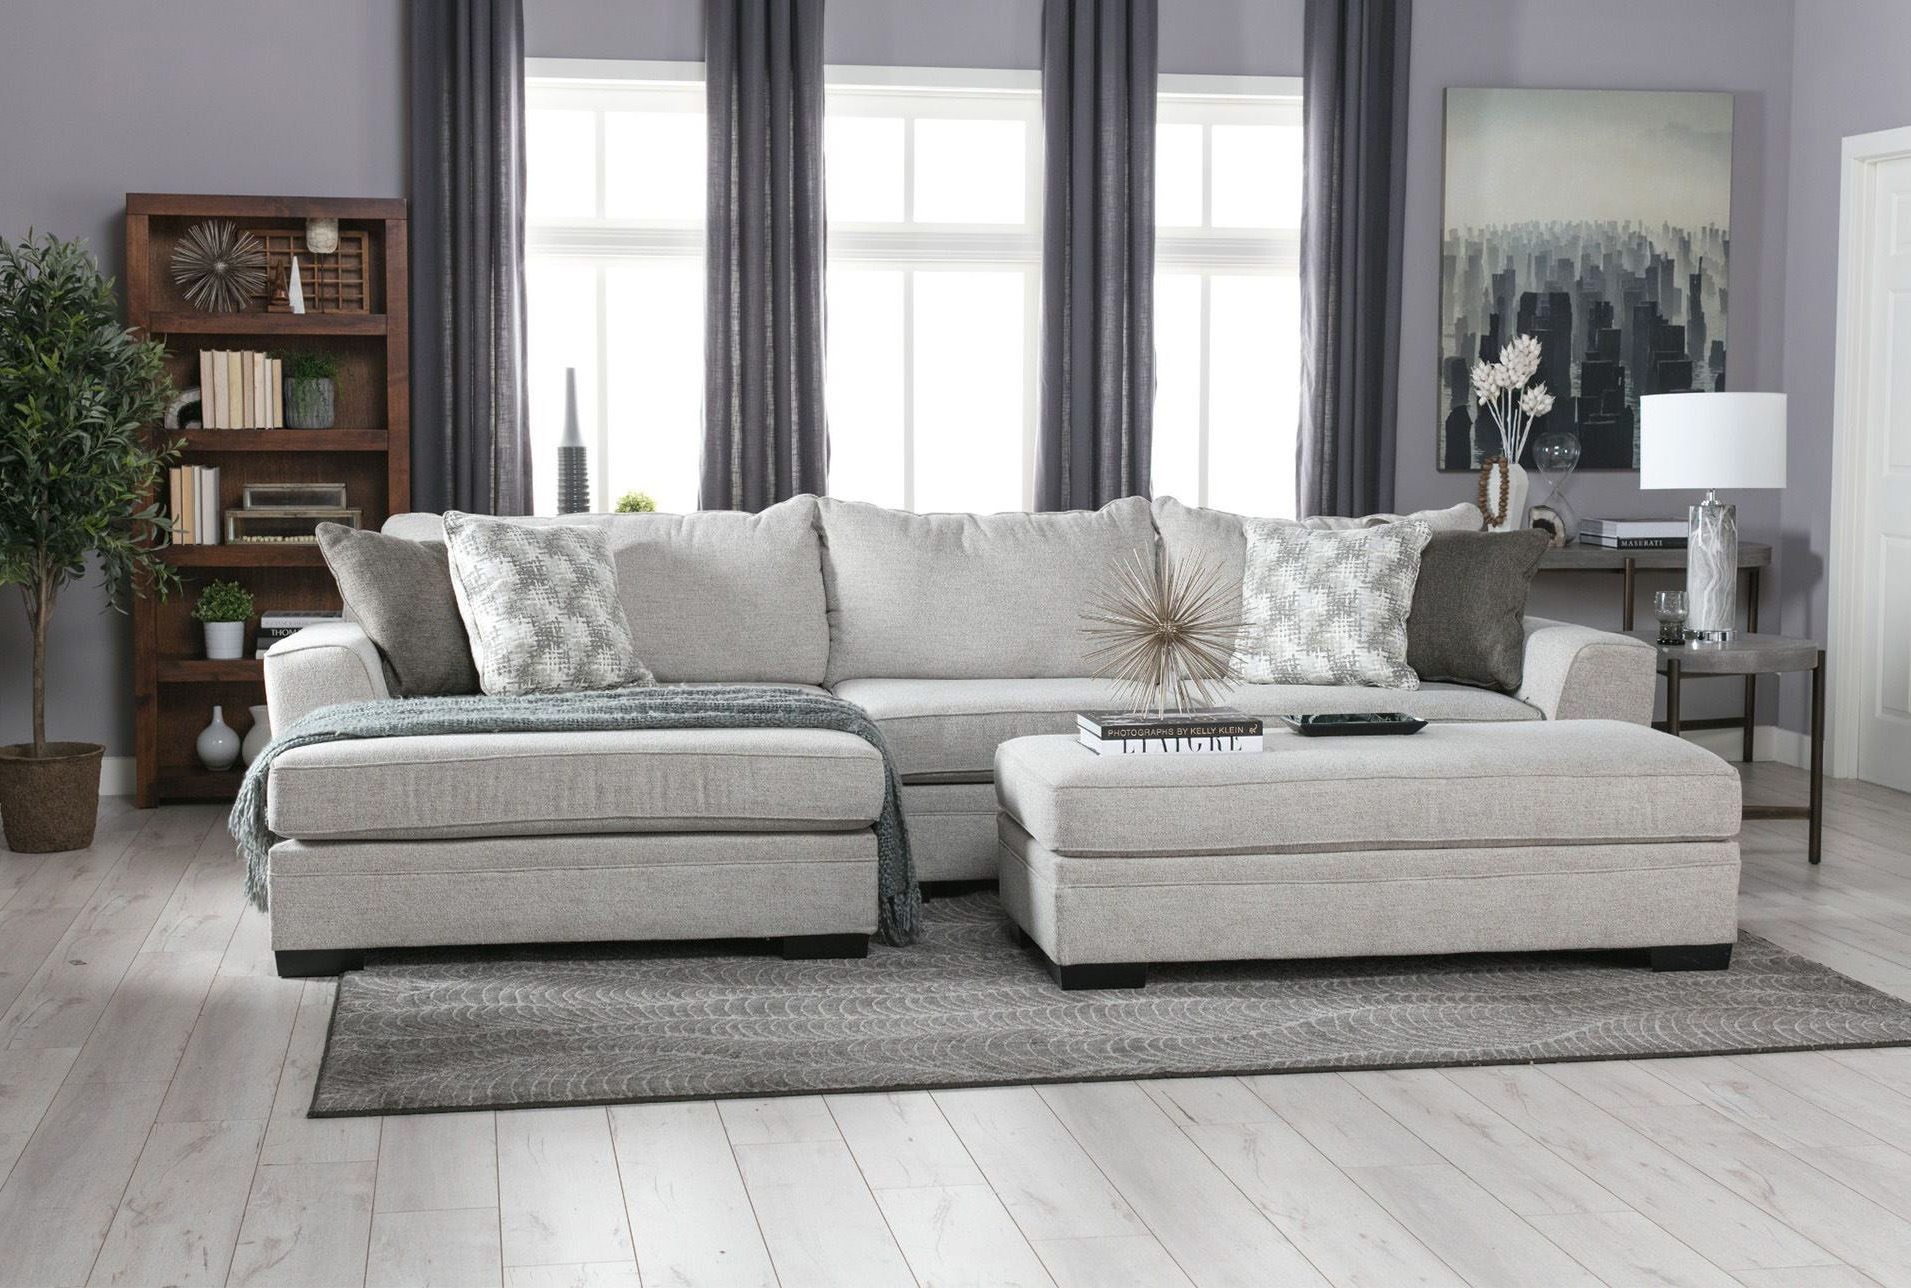 2019 Delano 2 Piece Sectionals With Raf Oversized Chaise Inside Delano 2 Piece Sectional W/raf Oversized Chaise In (View 3 of 20)